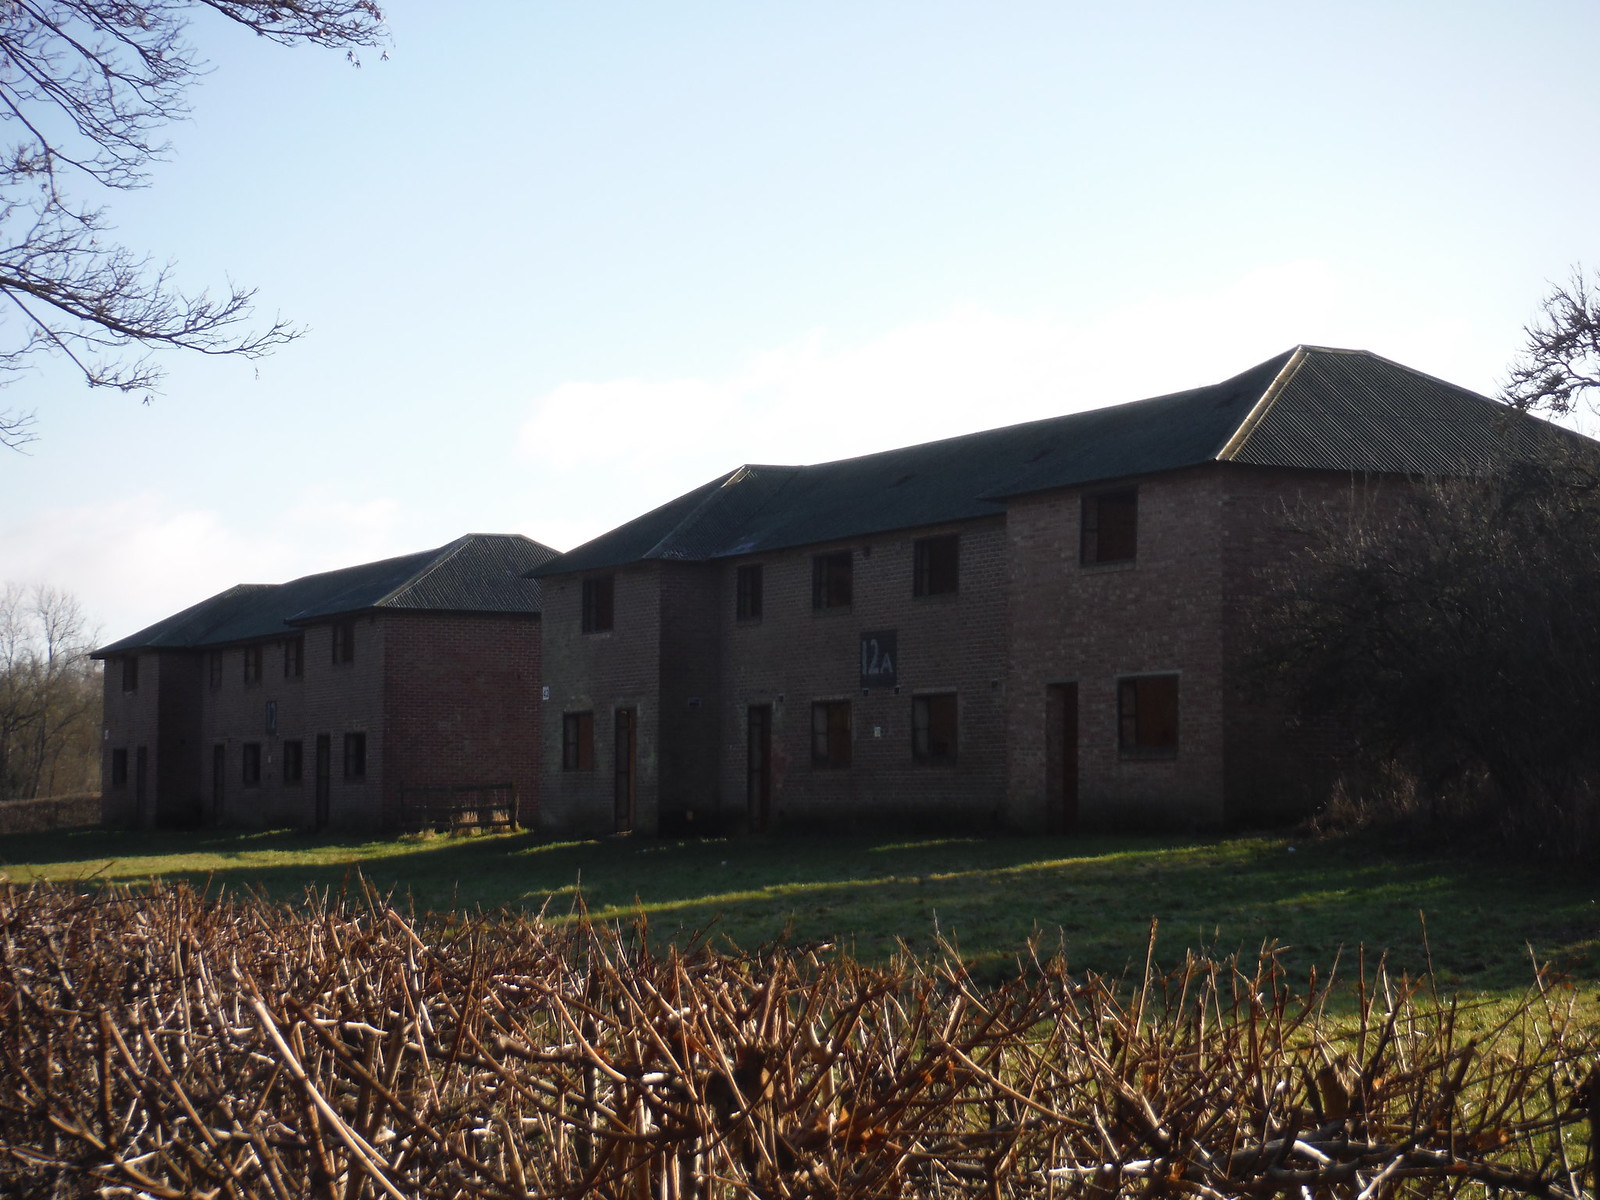 Imber Village, empty 'Council Houses' now used for combat training SWC Walk 286 Westbury to Warminster (via Imber Range)